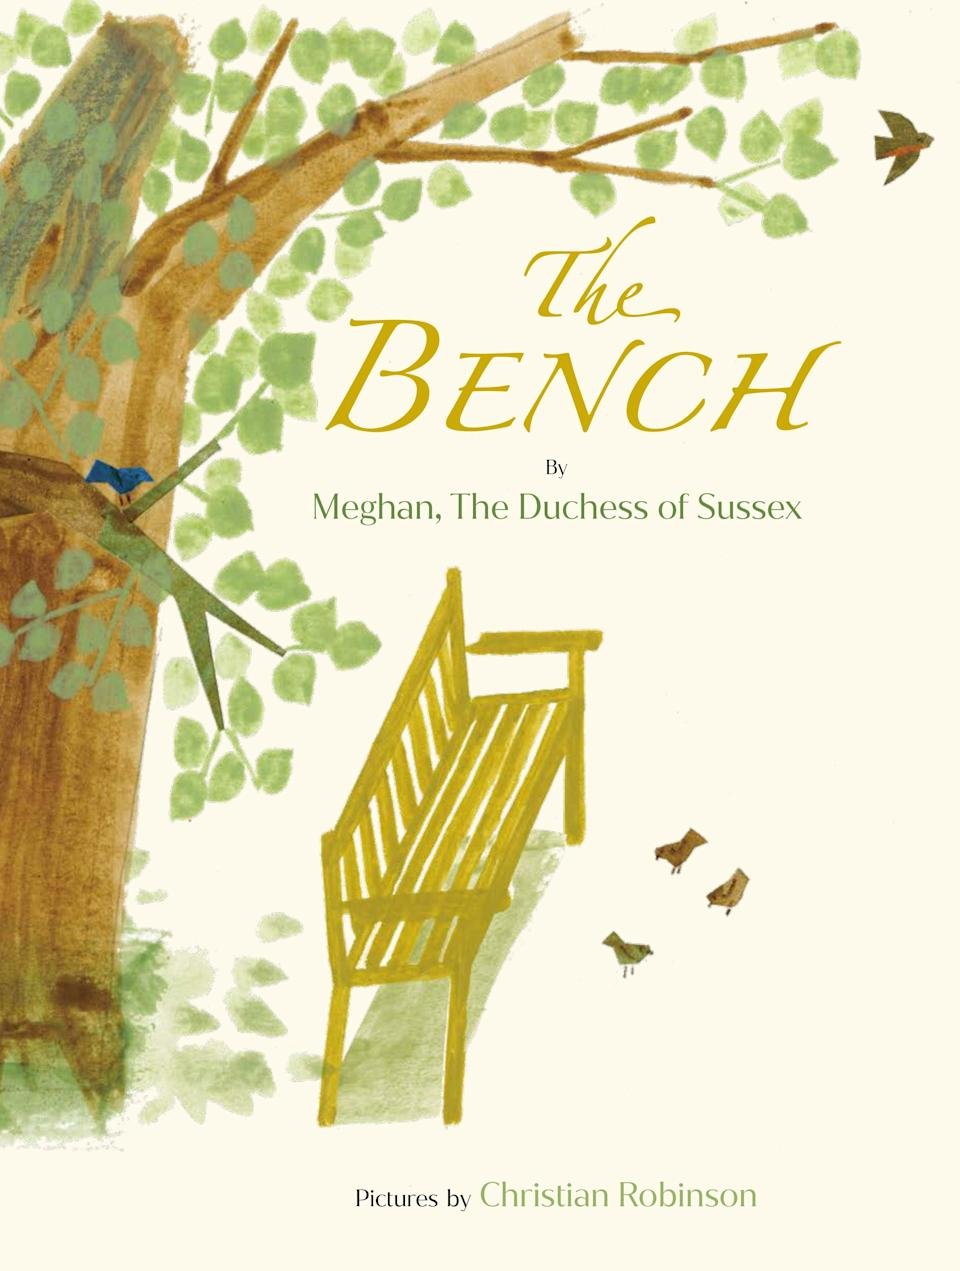 Duchess of Sussex writes children's book The Bench (PA Media)